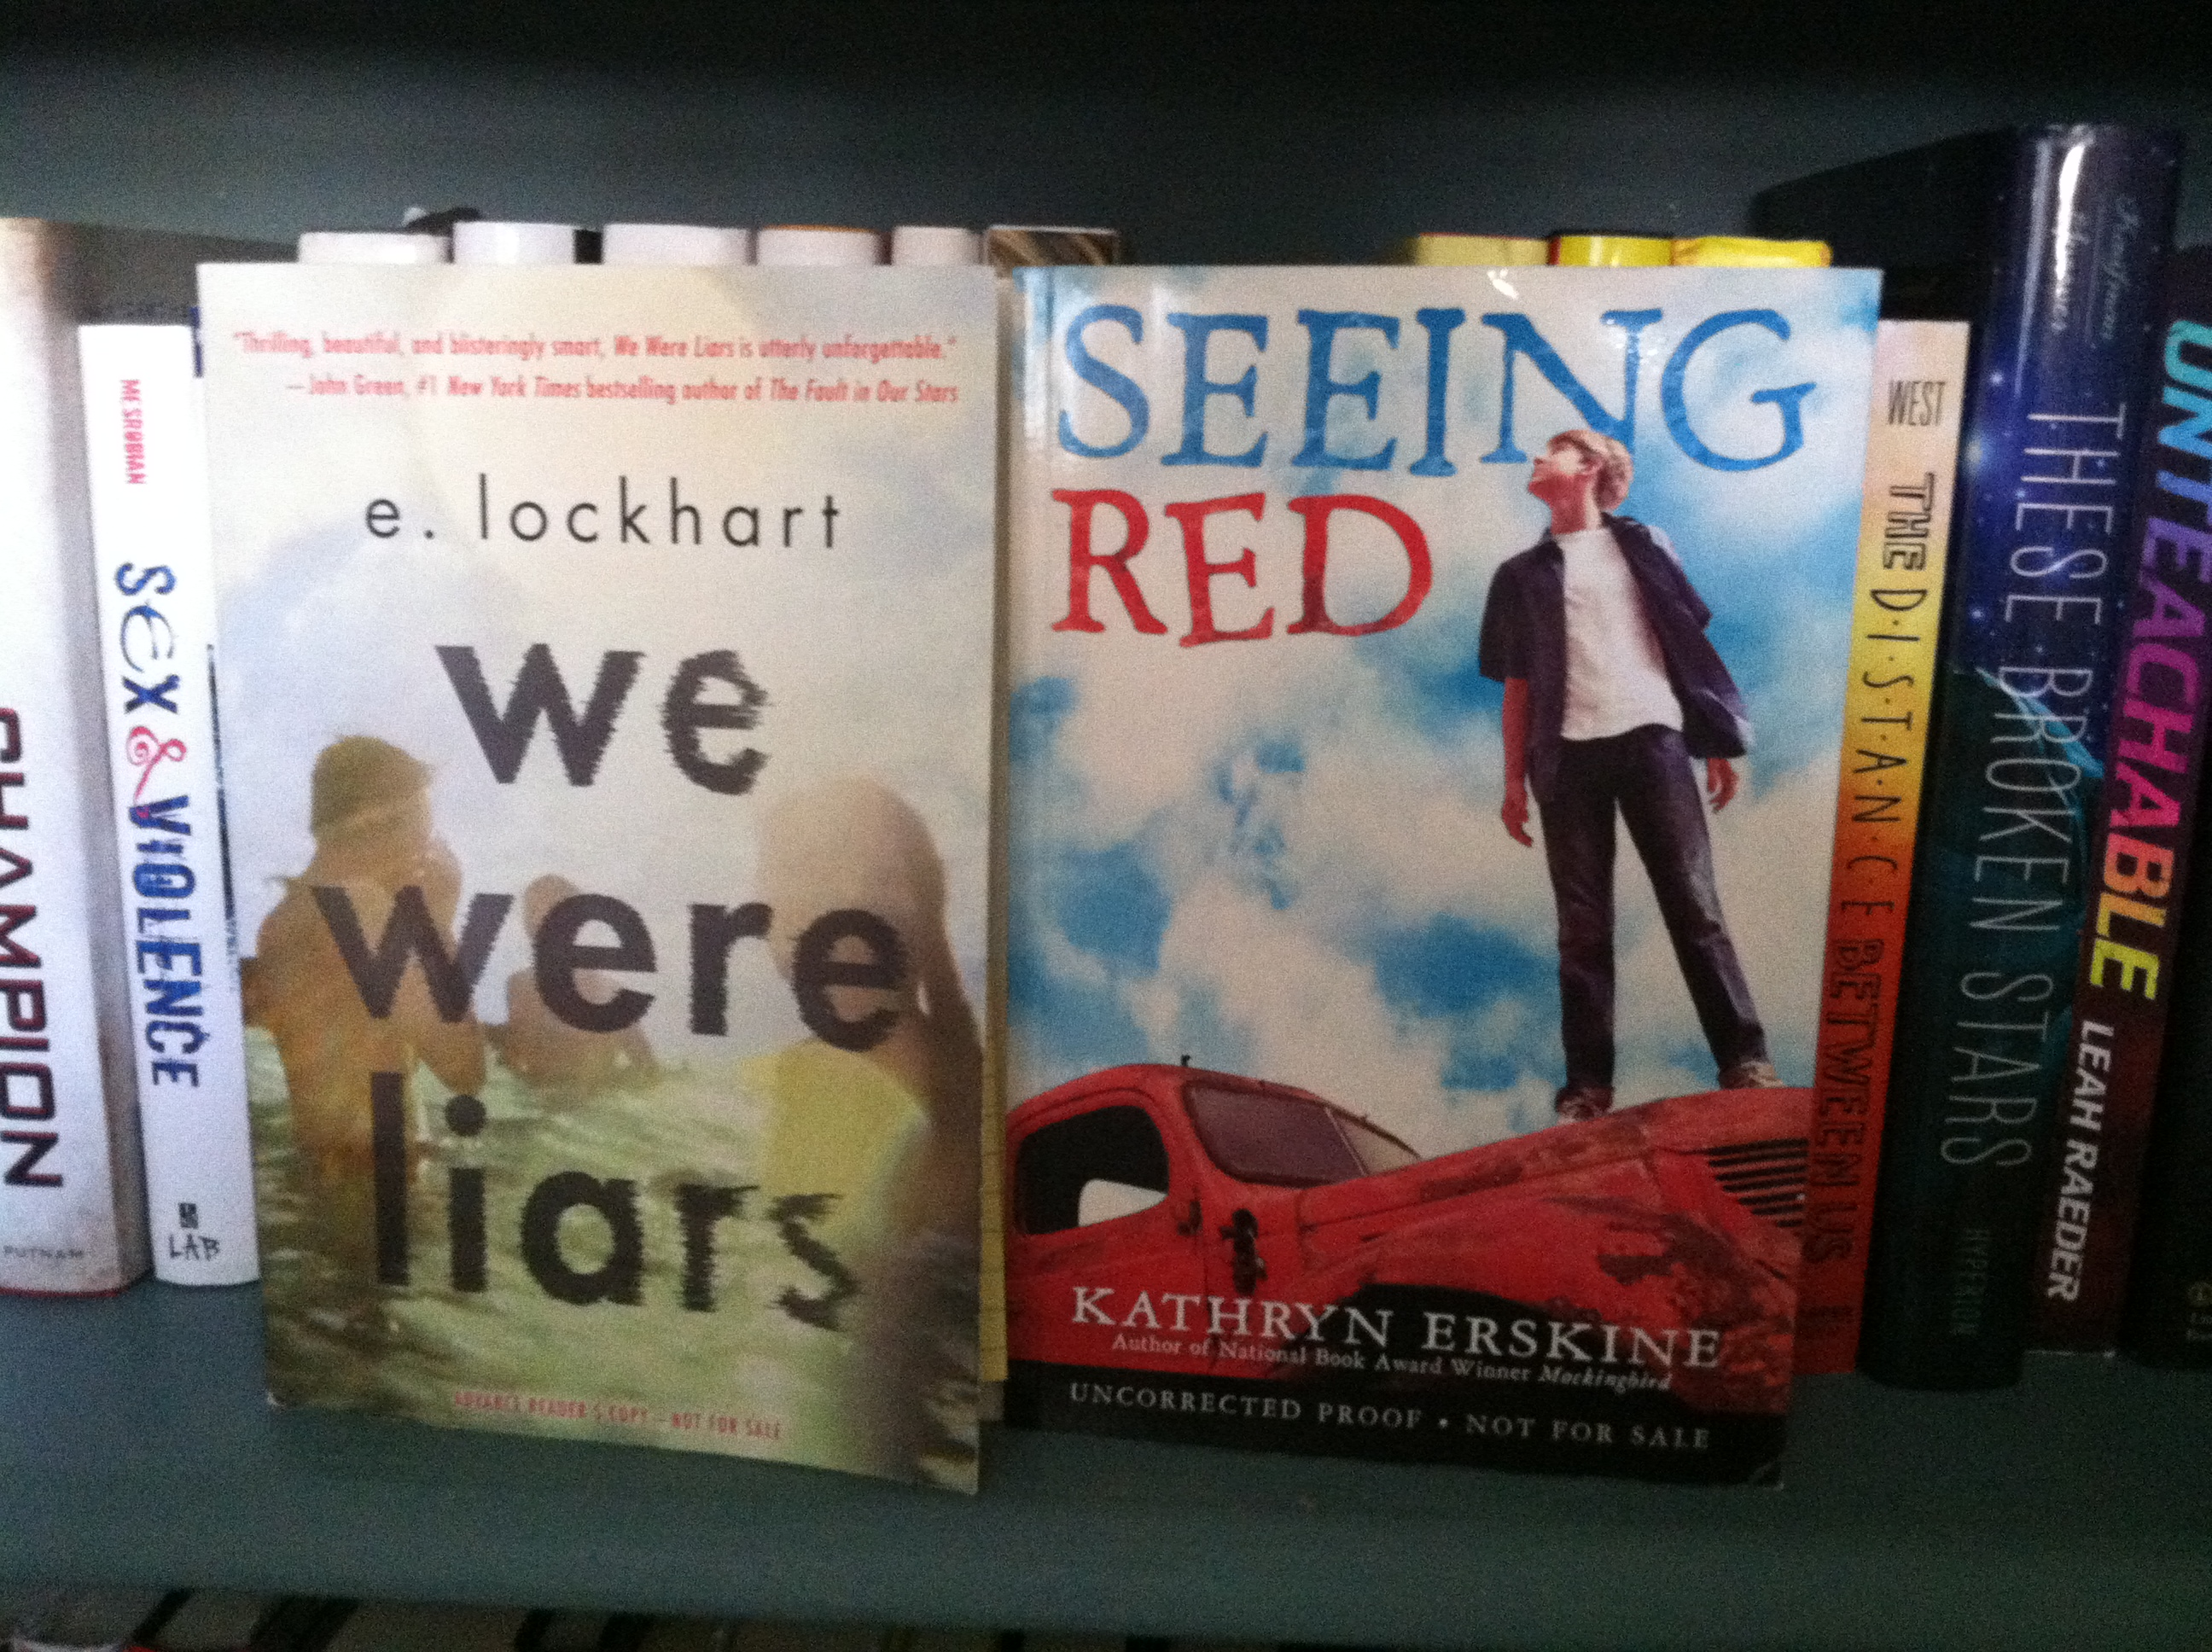 we were liars and seeing red